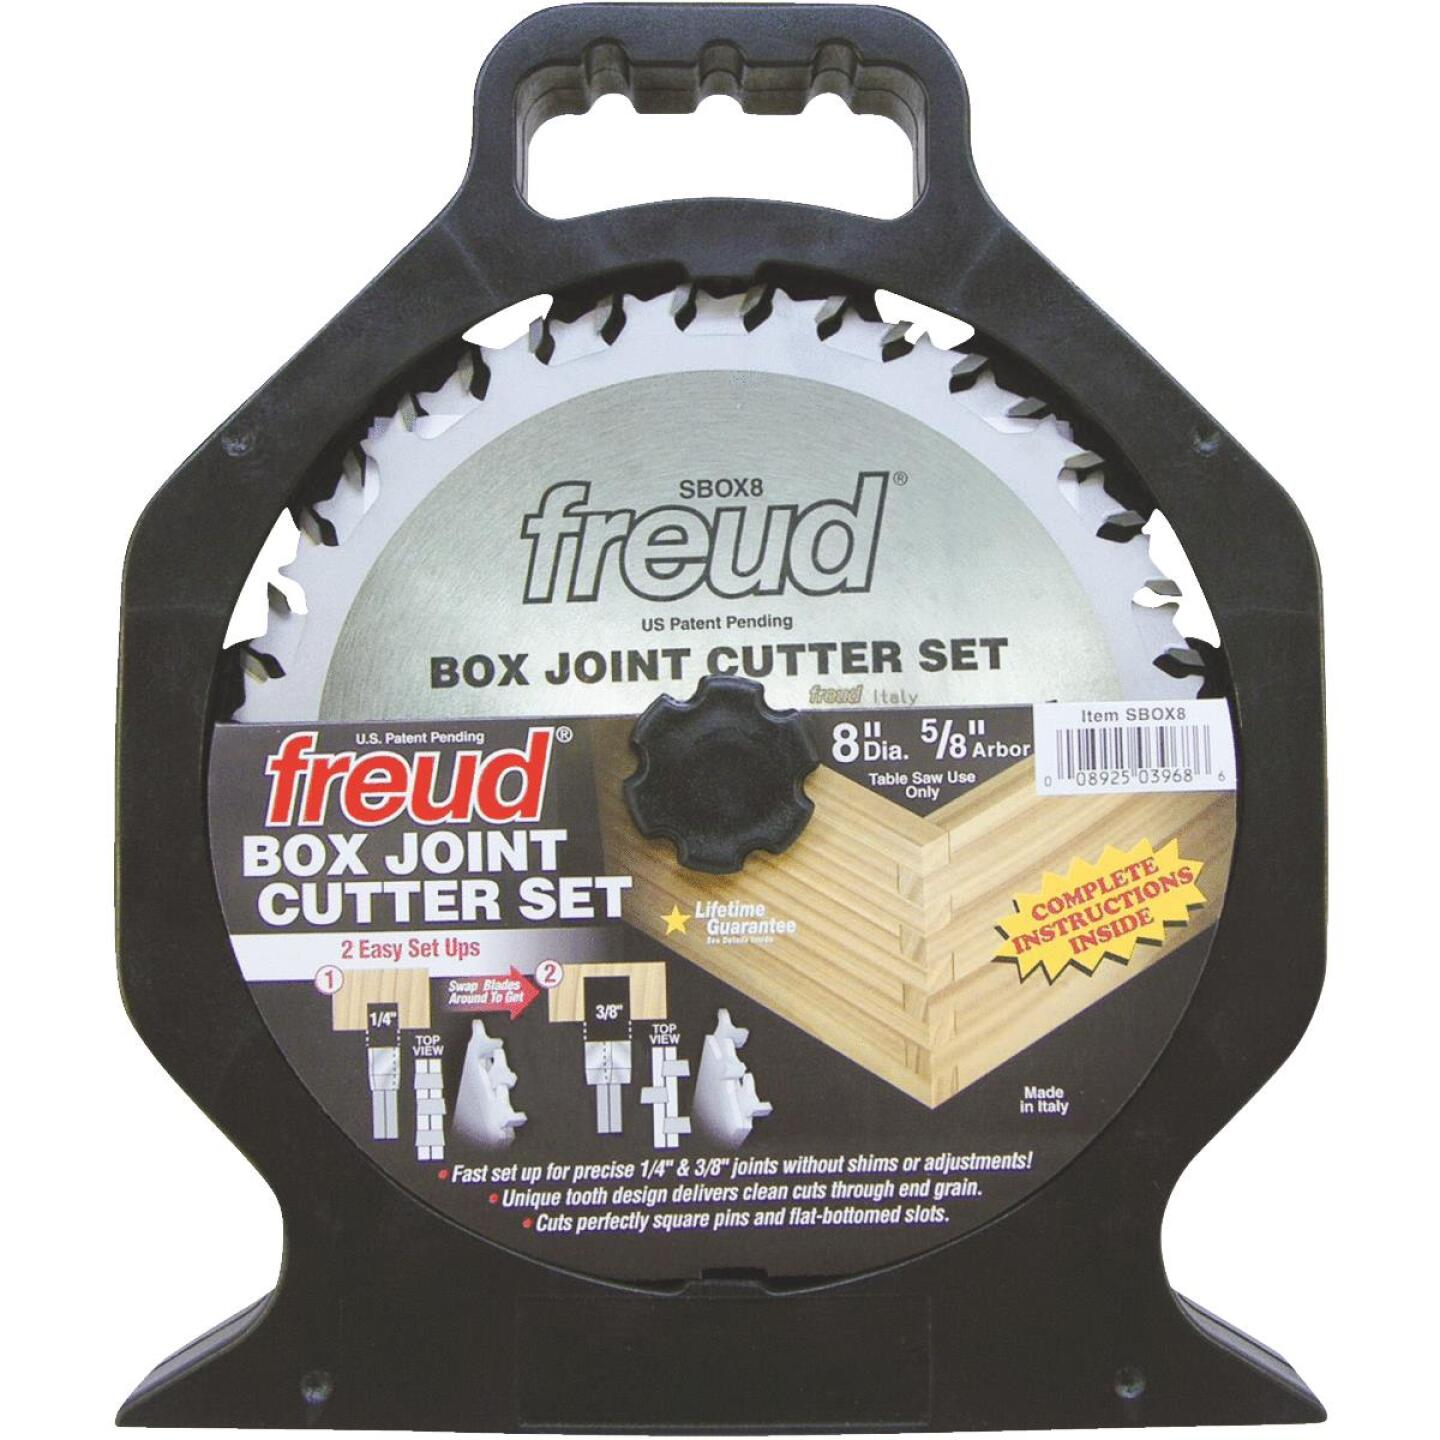 Freud 8 In. Box Joint Cutter Circular Saw Blade Set Image 1